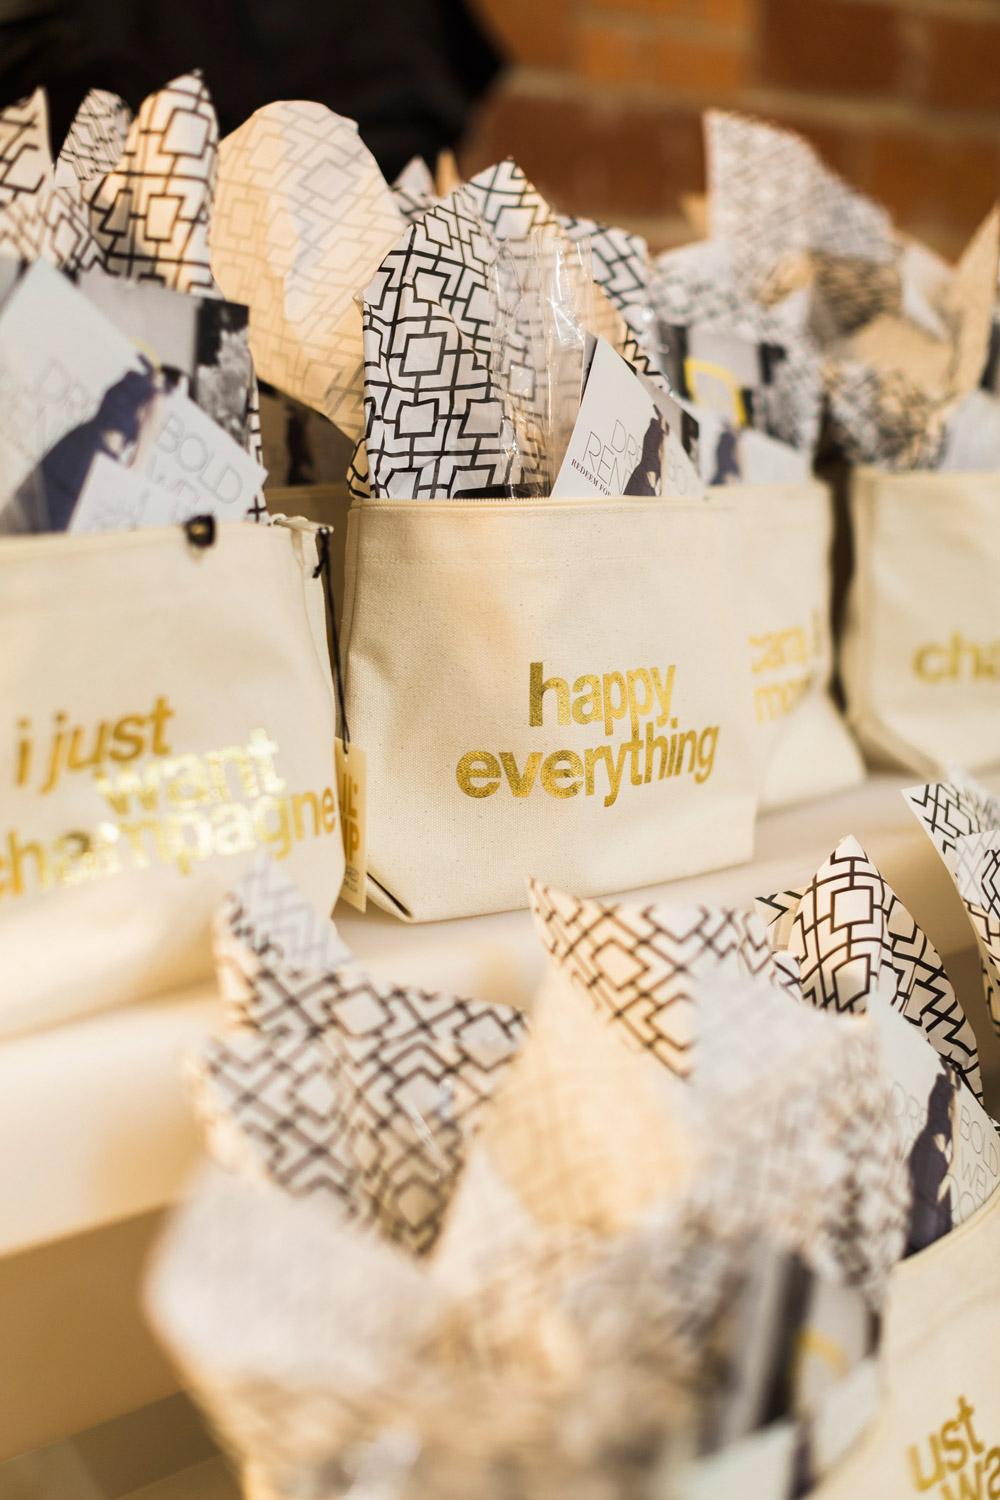 316 Design Source Event, happy everything dogeared bag